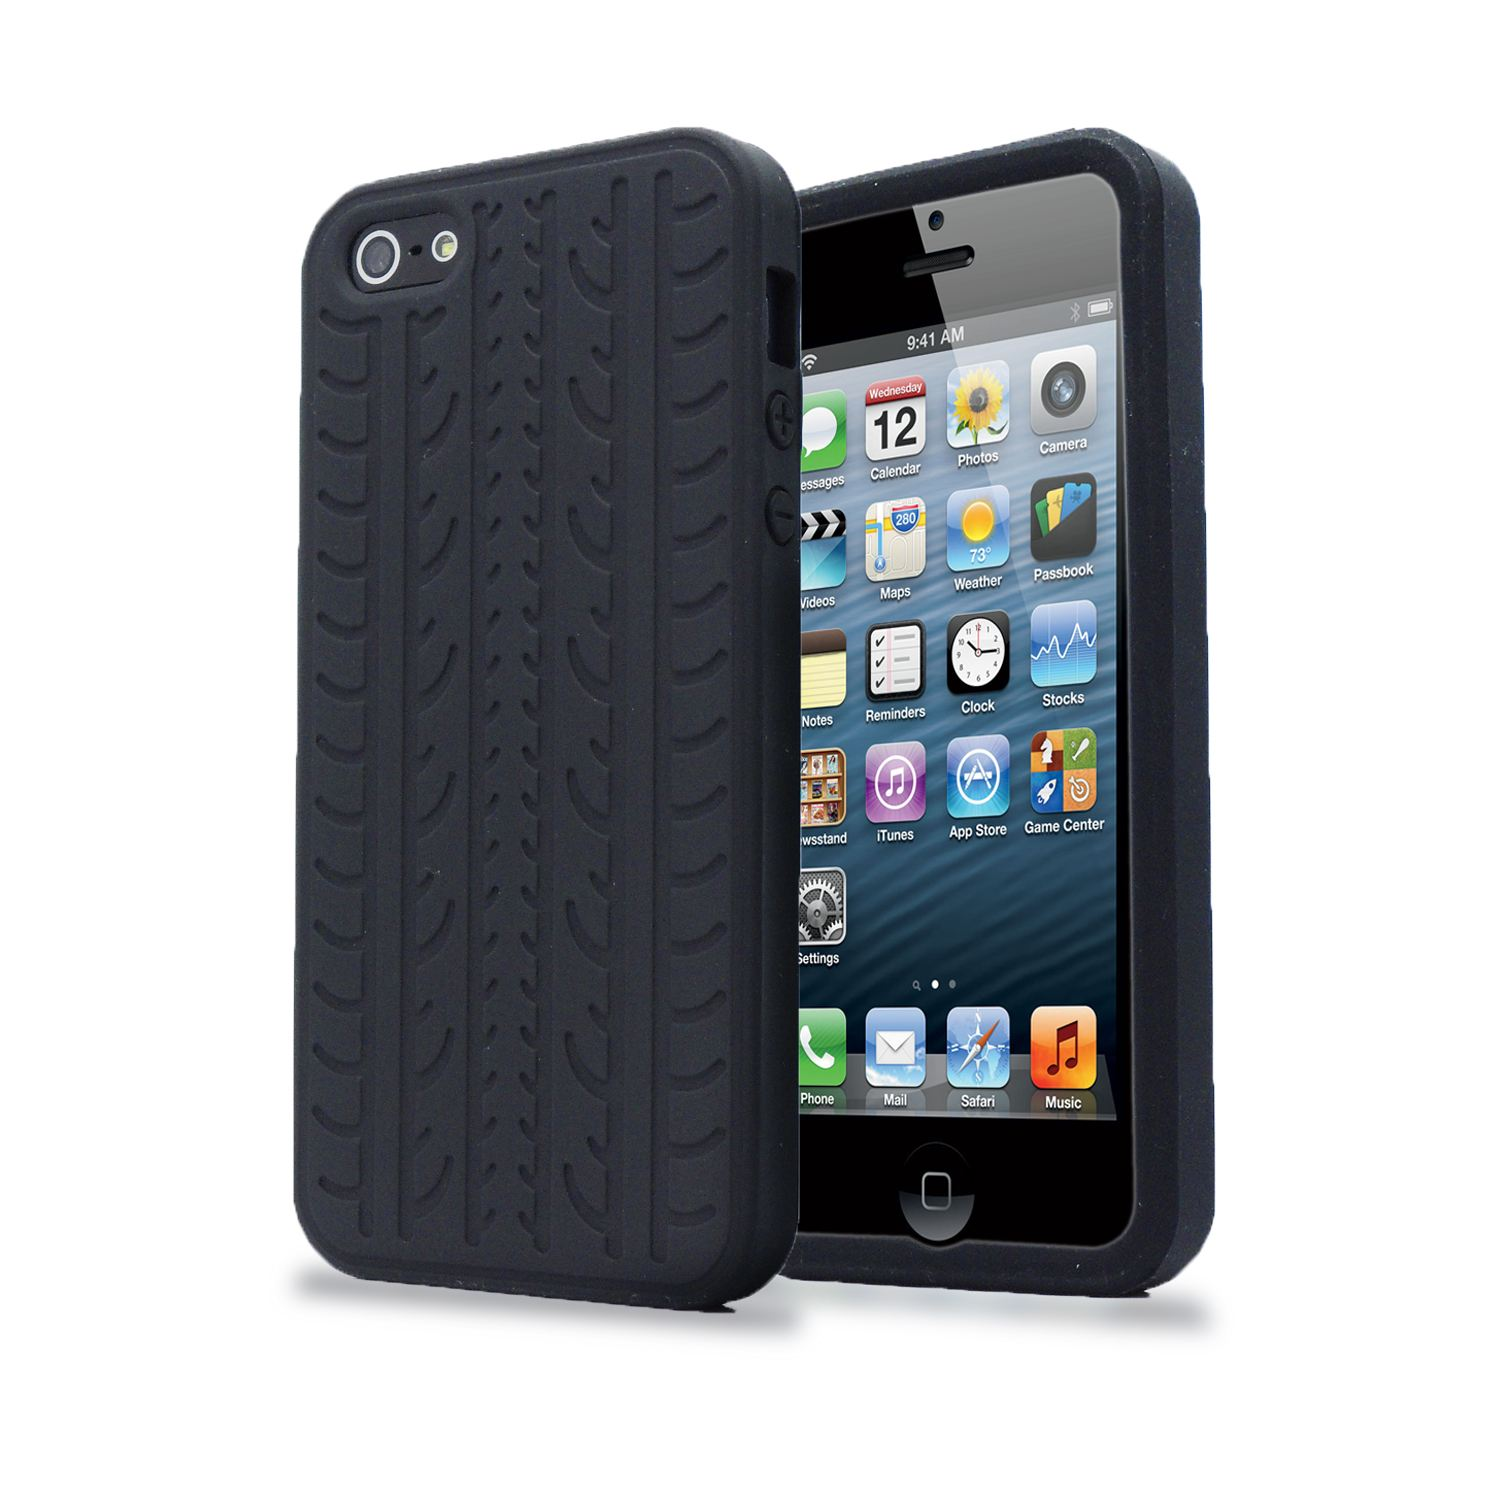 BLACK-TYRE-TREAD-SOFT-SILICONE-RUBBER-CASE-PROTECTOR-COVER-FOR-IPHONE-SE-5S-5